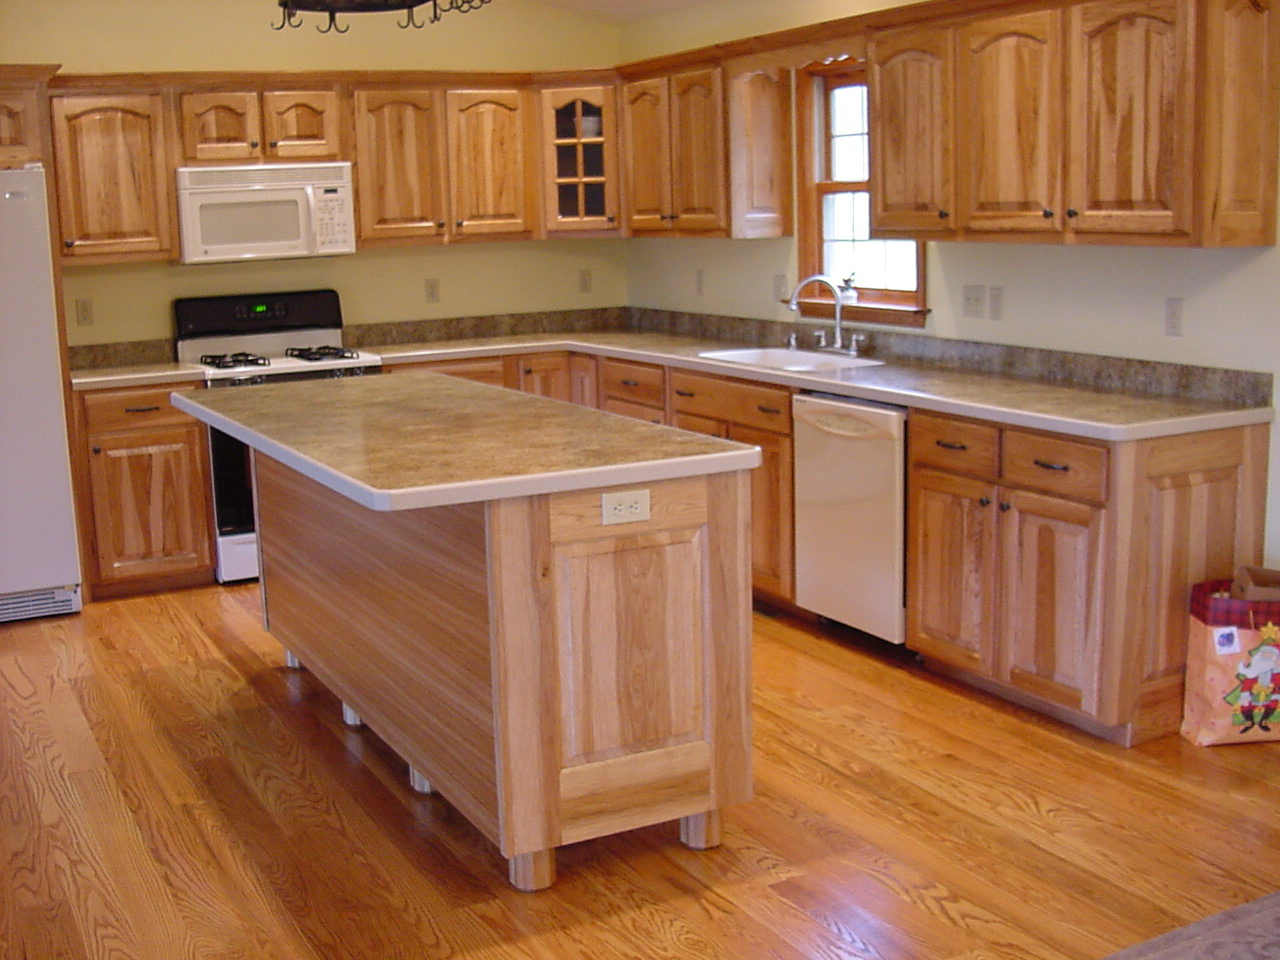 House construction in india kitchens countertop materials - Counter island designs ...